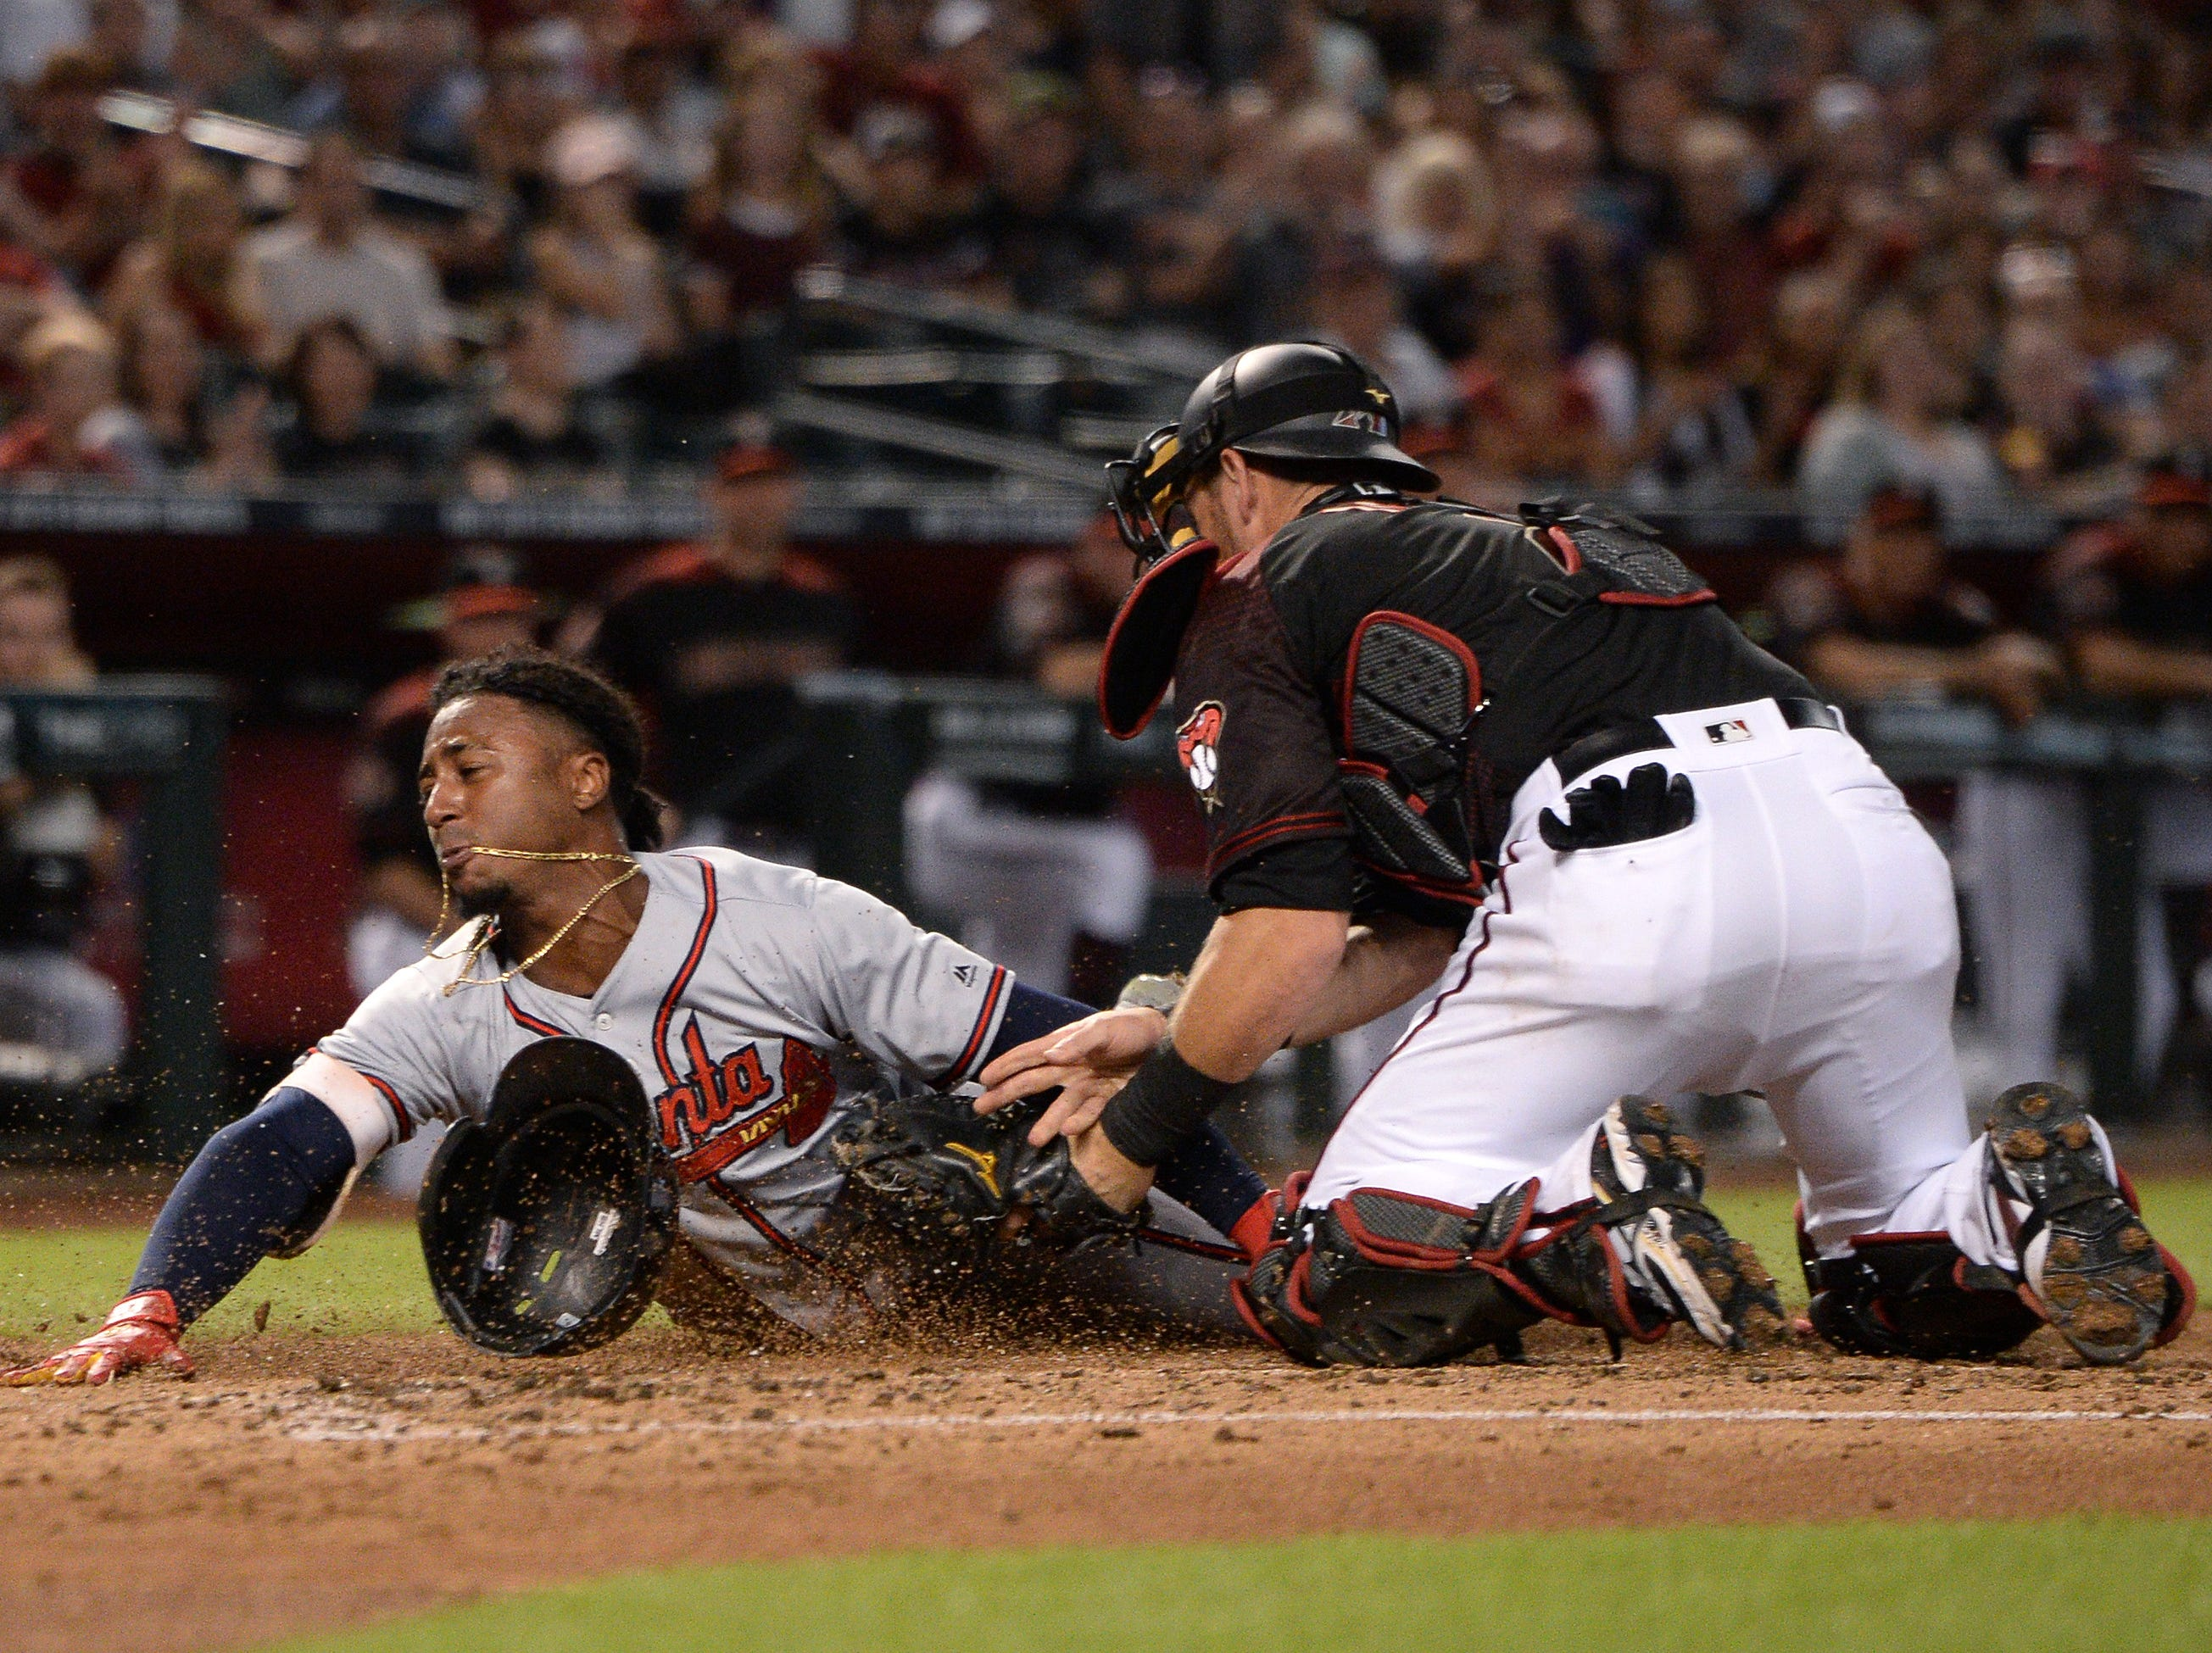 Sep 8, 2018; Phoenix, AZ, USA; Atlanta Braves second baseman Ozzie Albies (left) is tagged out at home by Arizona Diamondbacks catcher Jeff Mathis (right) during the second inning at Chase Field. Mandatory Credit: Orlando Ramirez-USA TODAY Sports